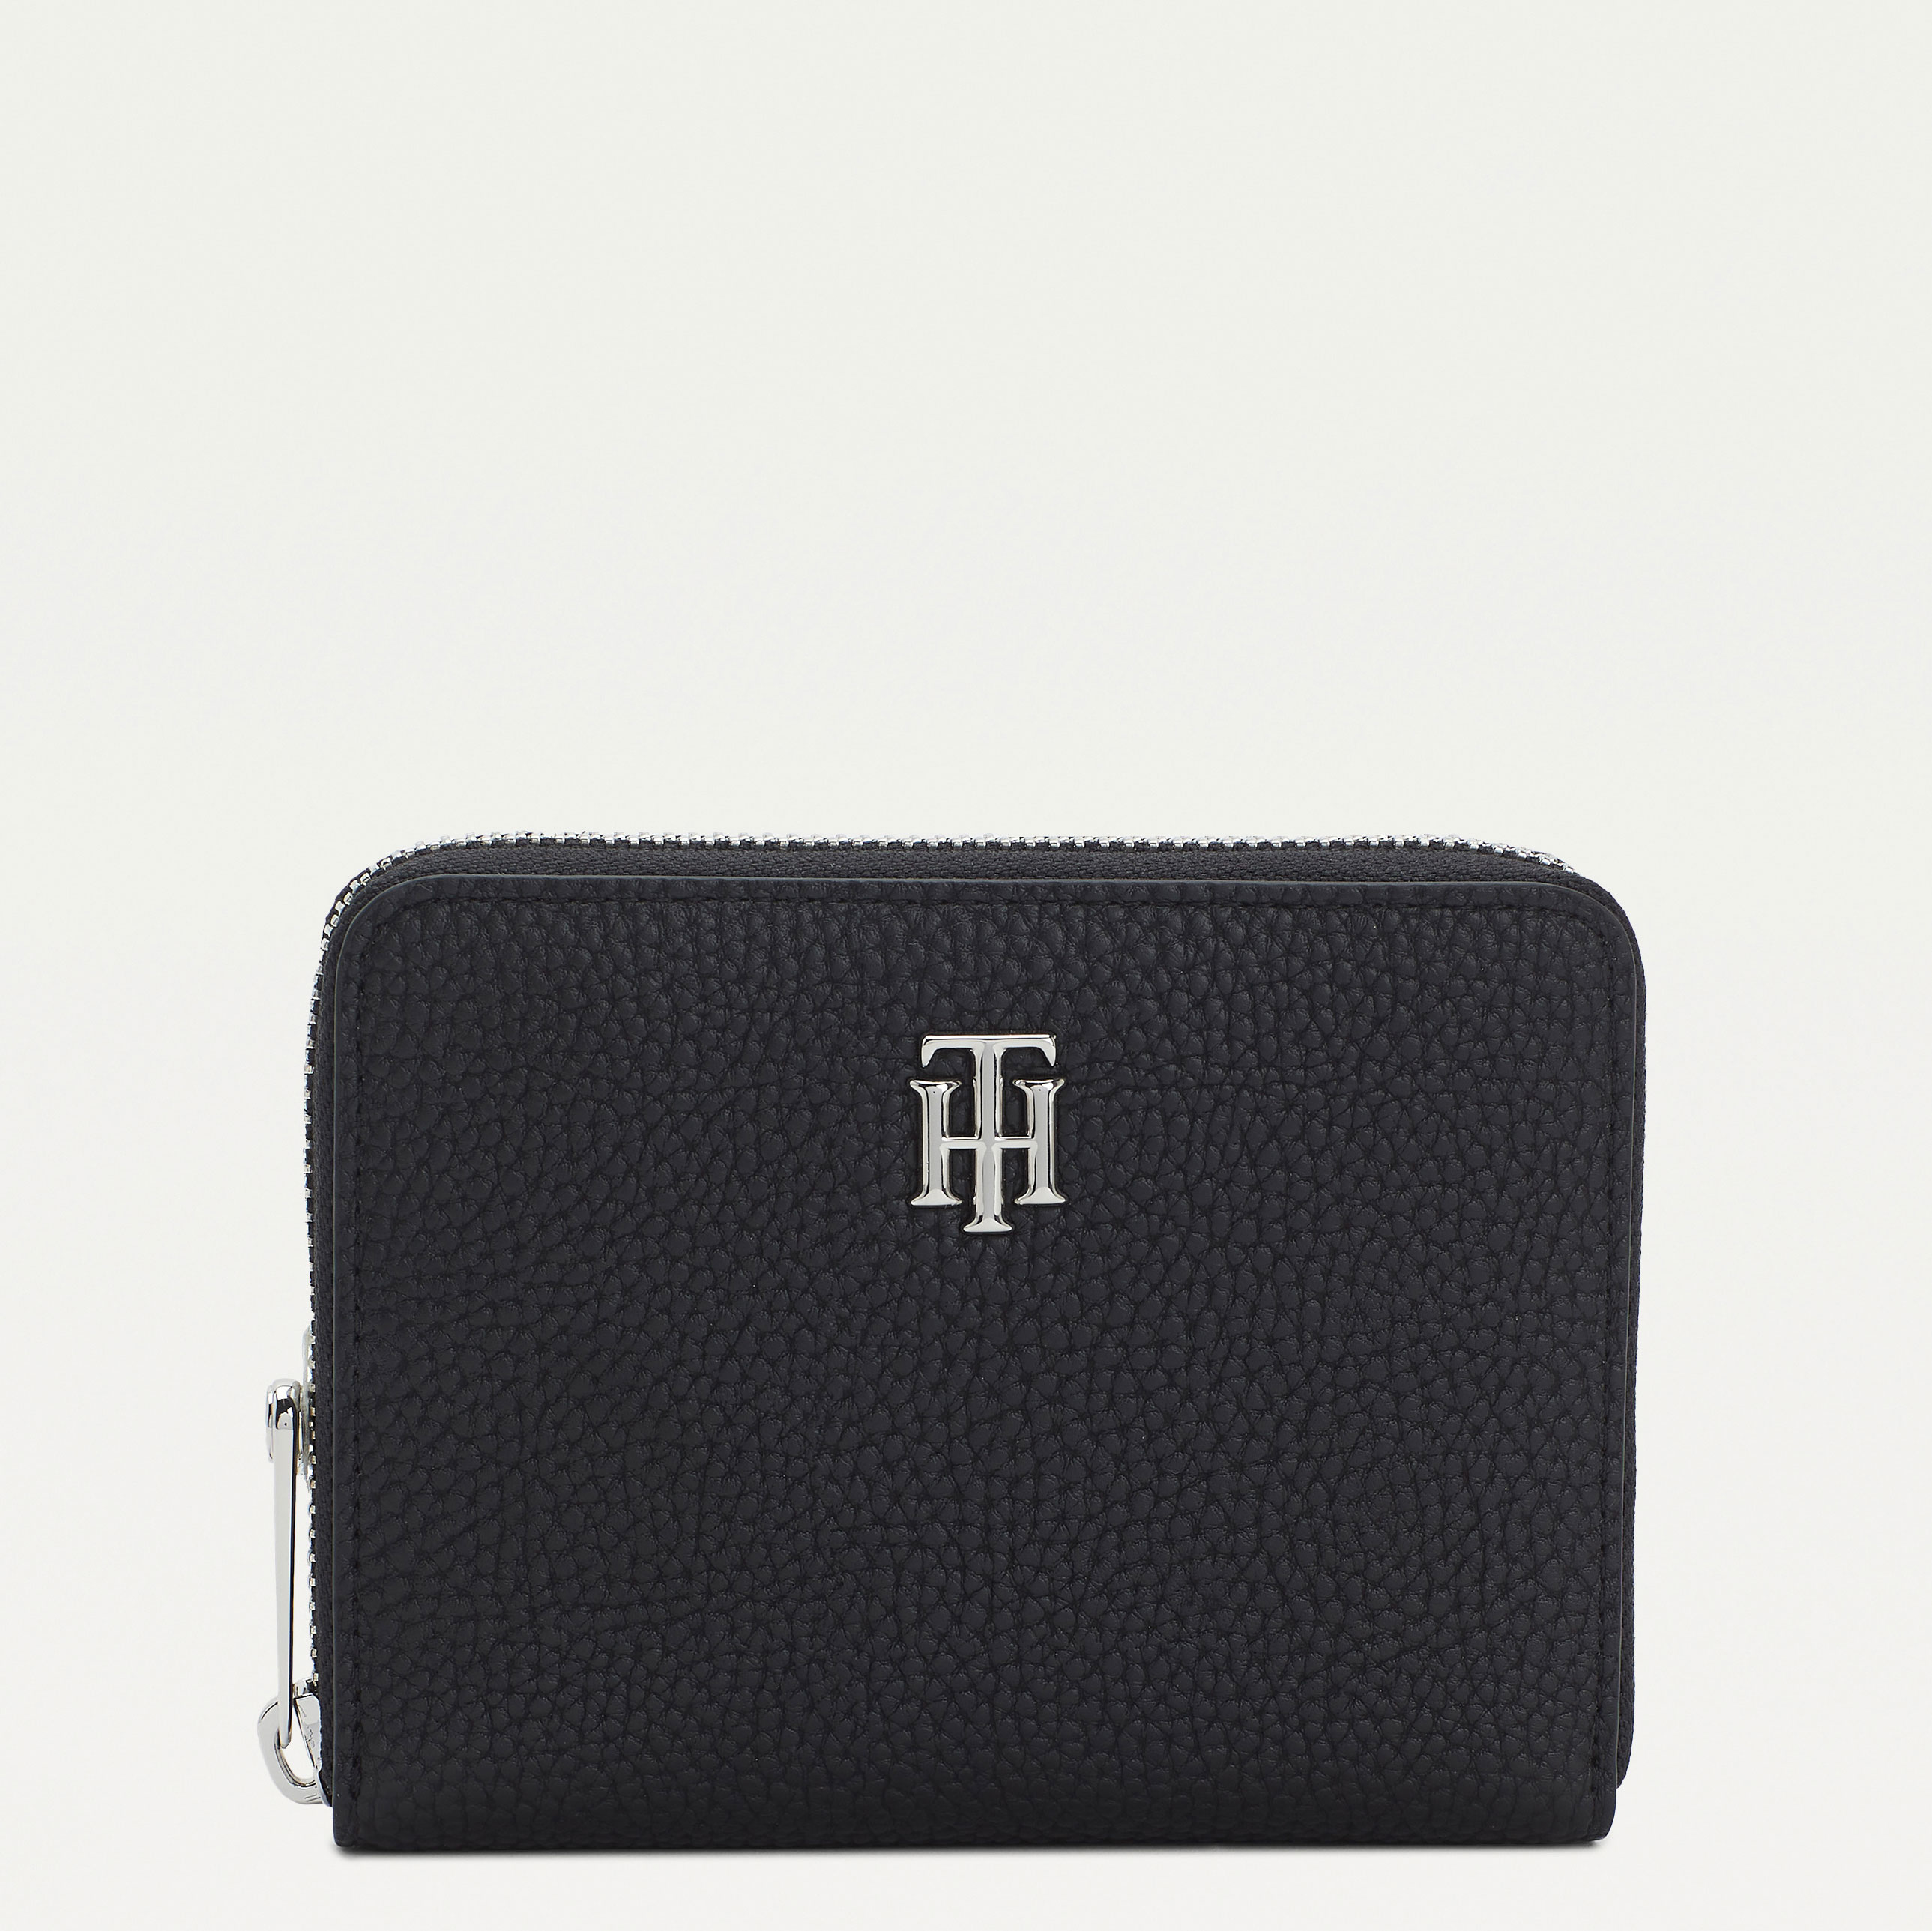 TOMMY HILFIGER Marroquinería Billetero Th Element Med Za AW0AW10538-BDS